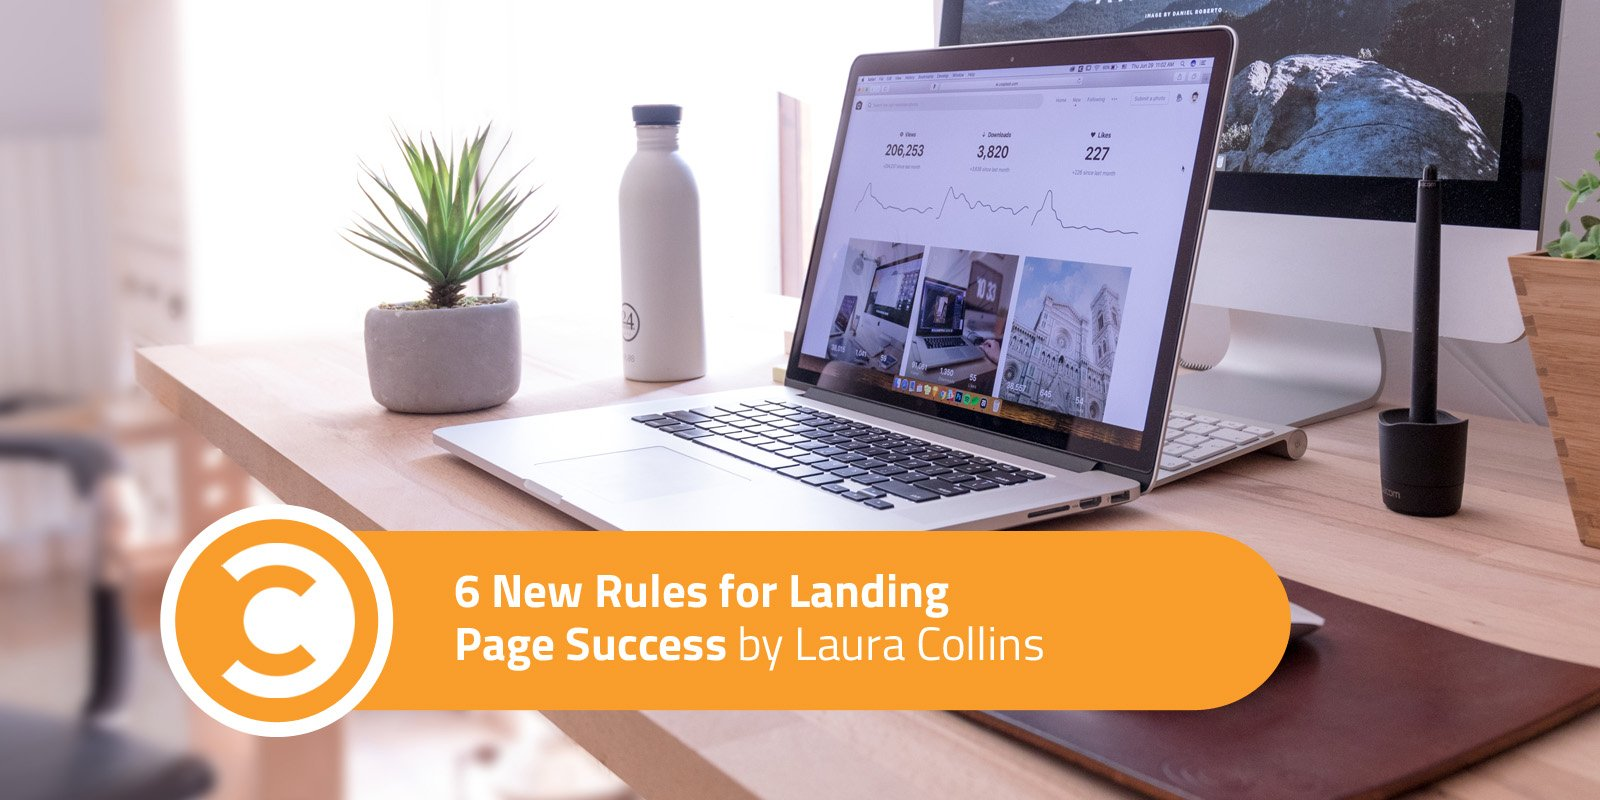 6 New Rules for Landing Page Success